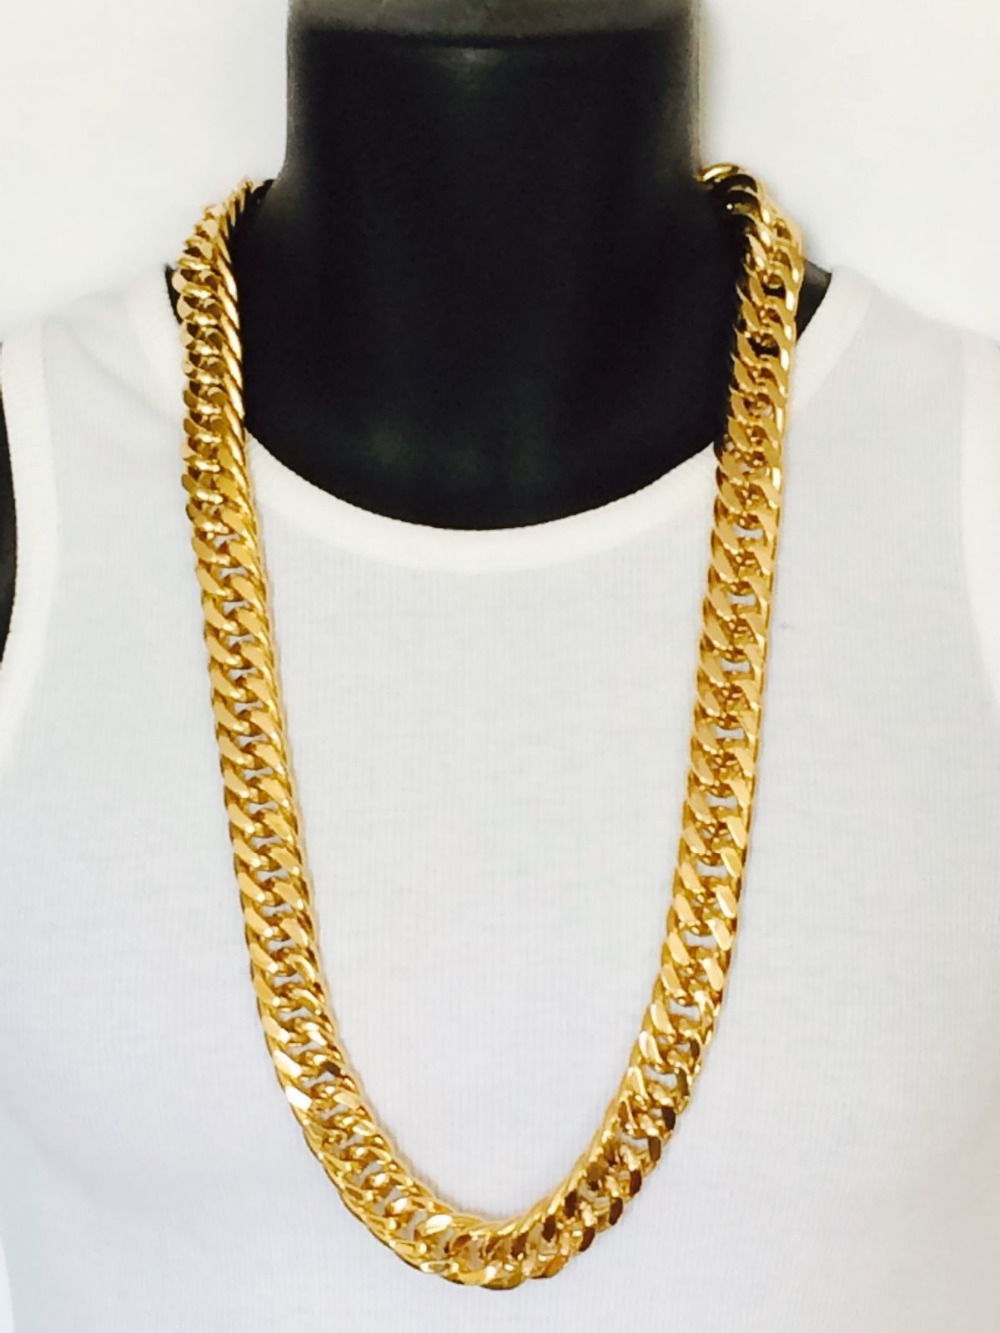 Mens Miami Cuban Link Curb Chain Real 24k Yellow Solid Gold GF Hip Hop 10MM Thick Chain JayZ Epacket FREE SHIPPING